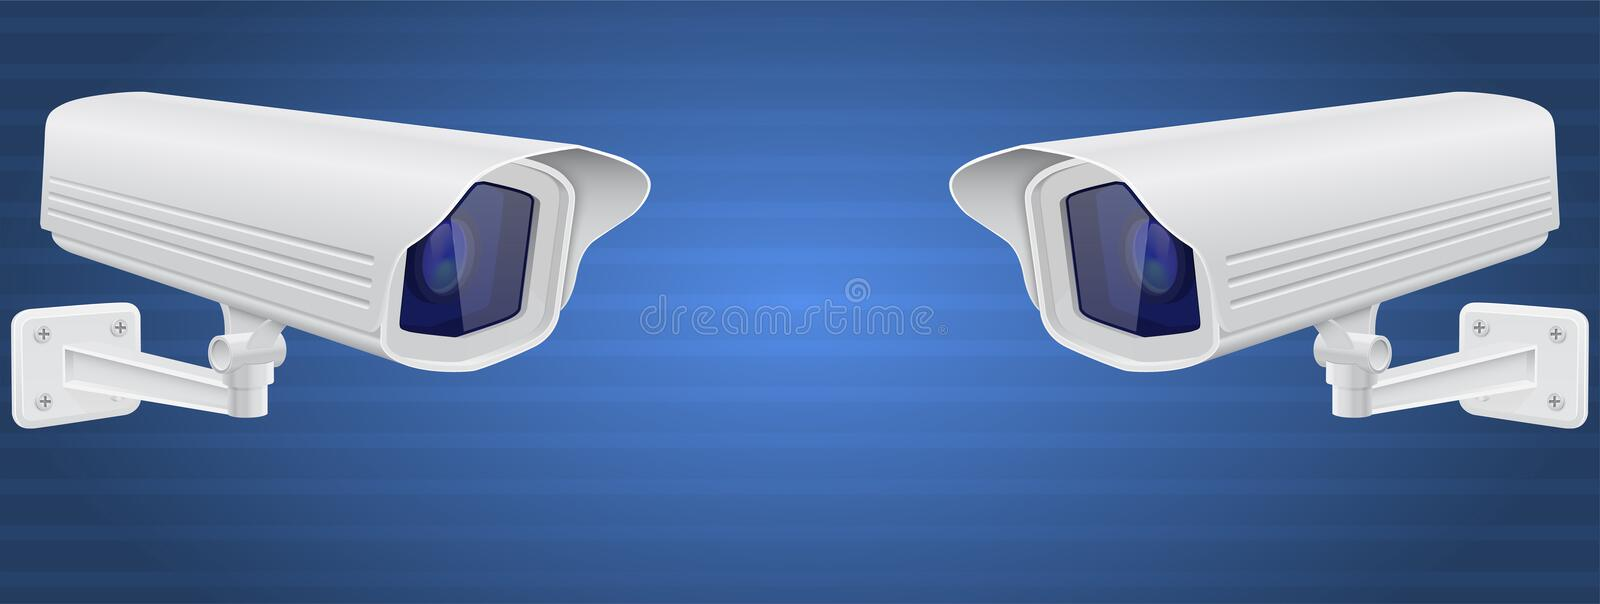 Security cameras. White CCTV surveillance system on blue background. Vector 3d illustration stock illustration